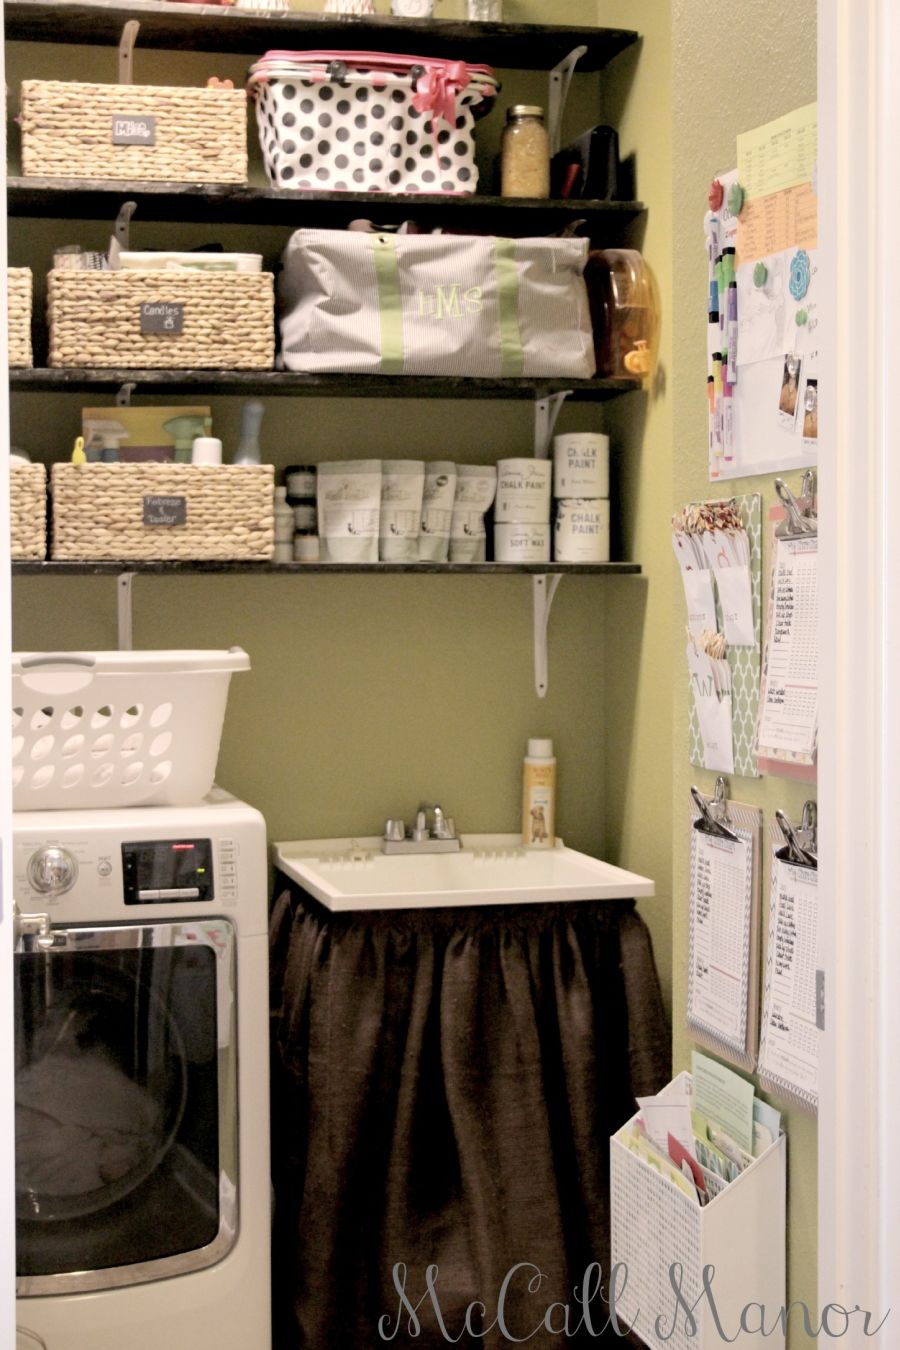 15 tips to creating a laundry room that's both charming and functional a Laundry Room